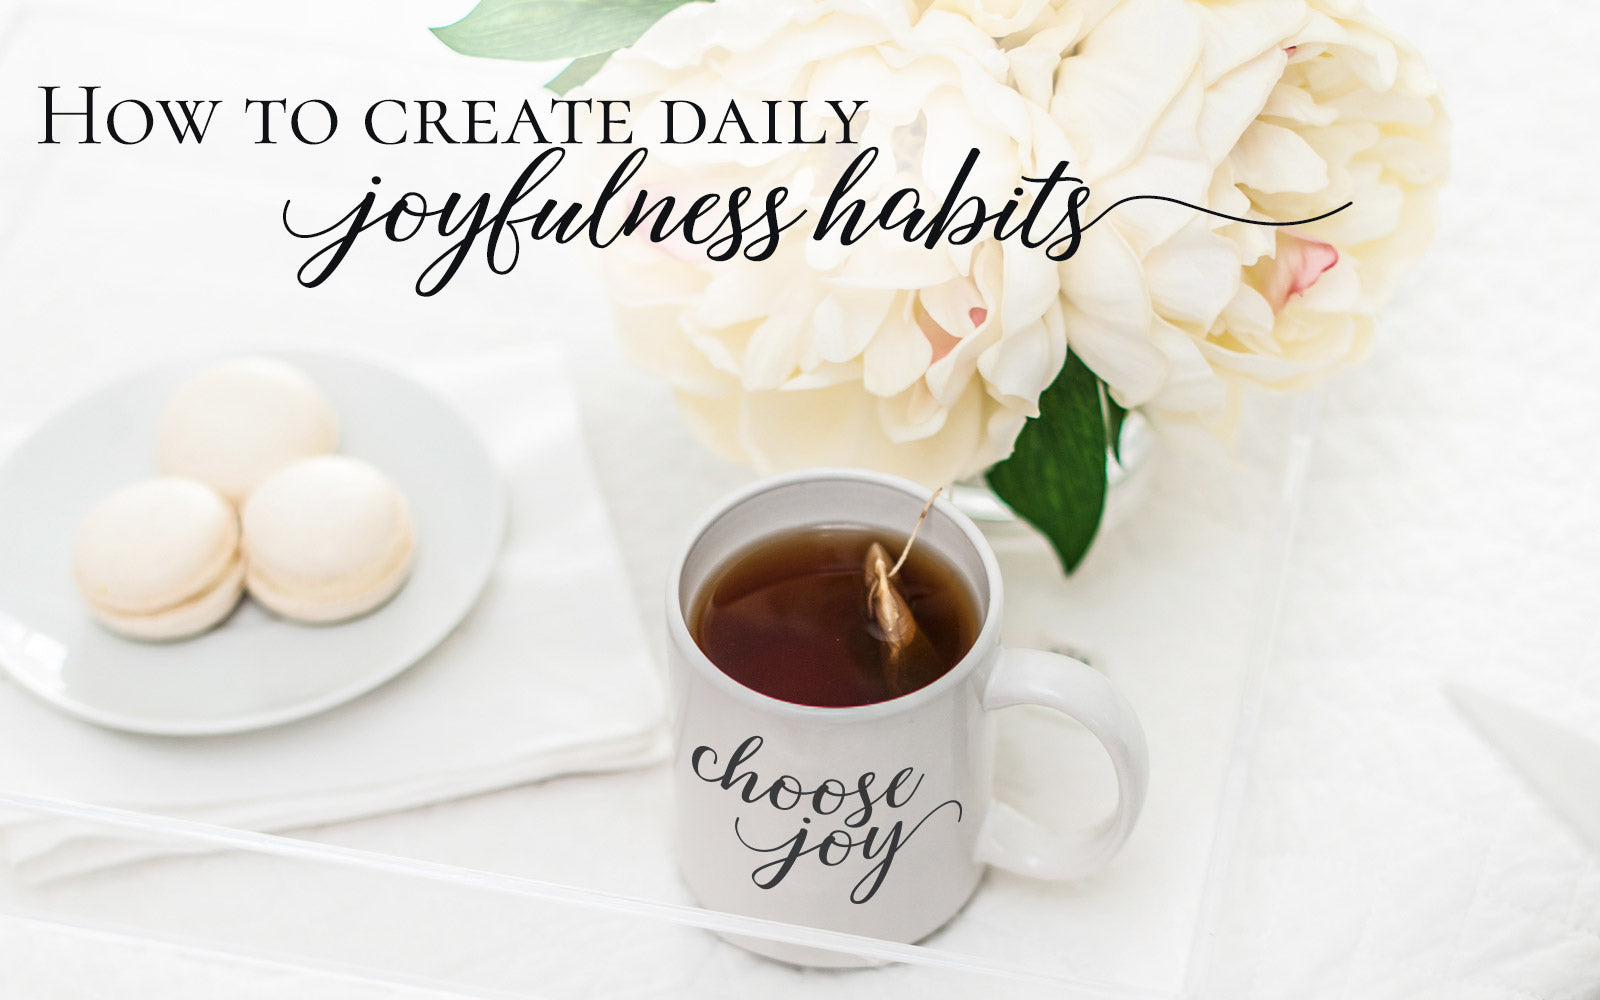 How To Create Daily Joyfulness Habits at BeautyAndGraceShop.com